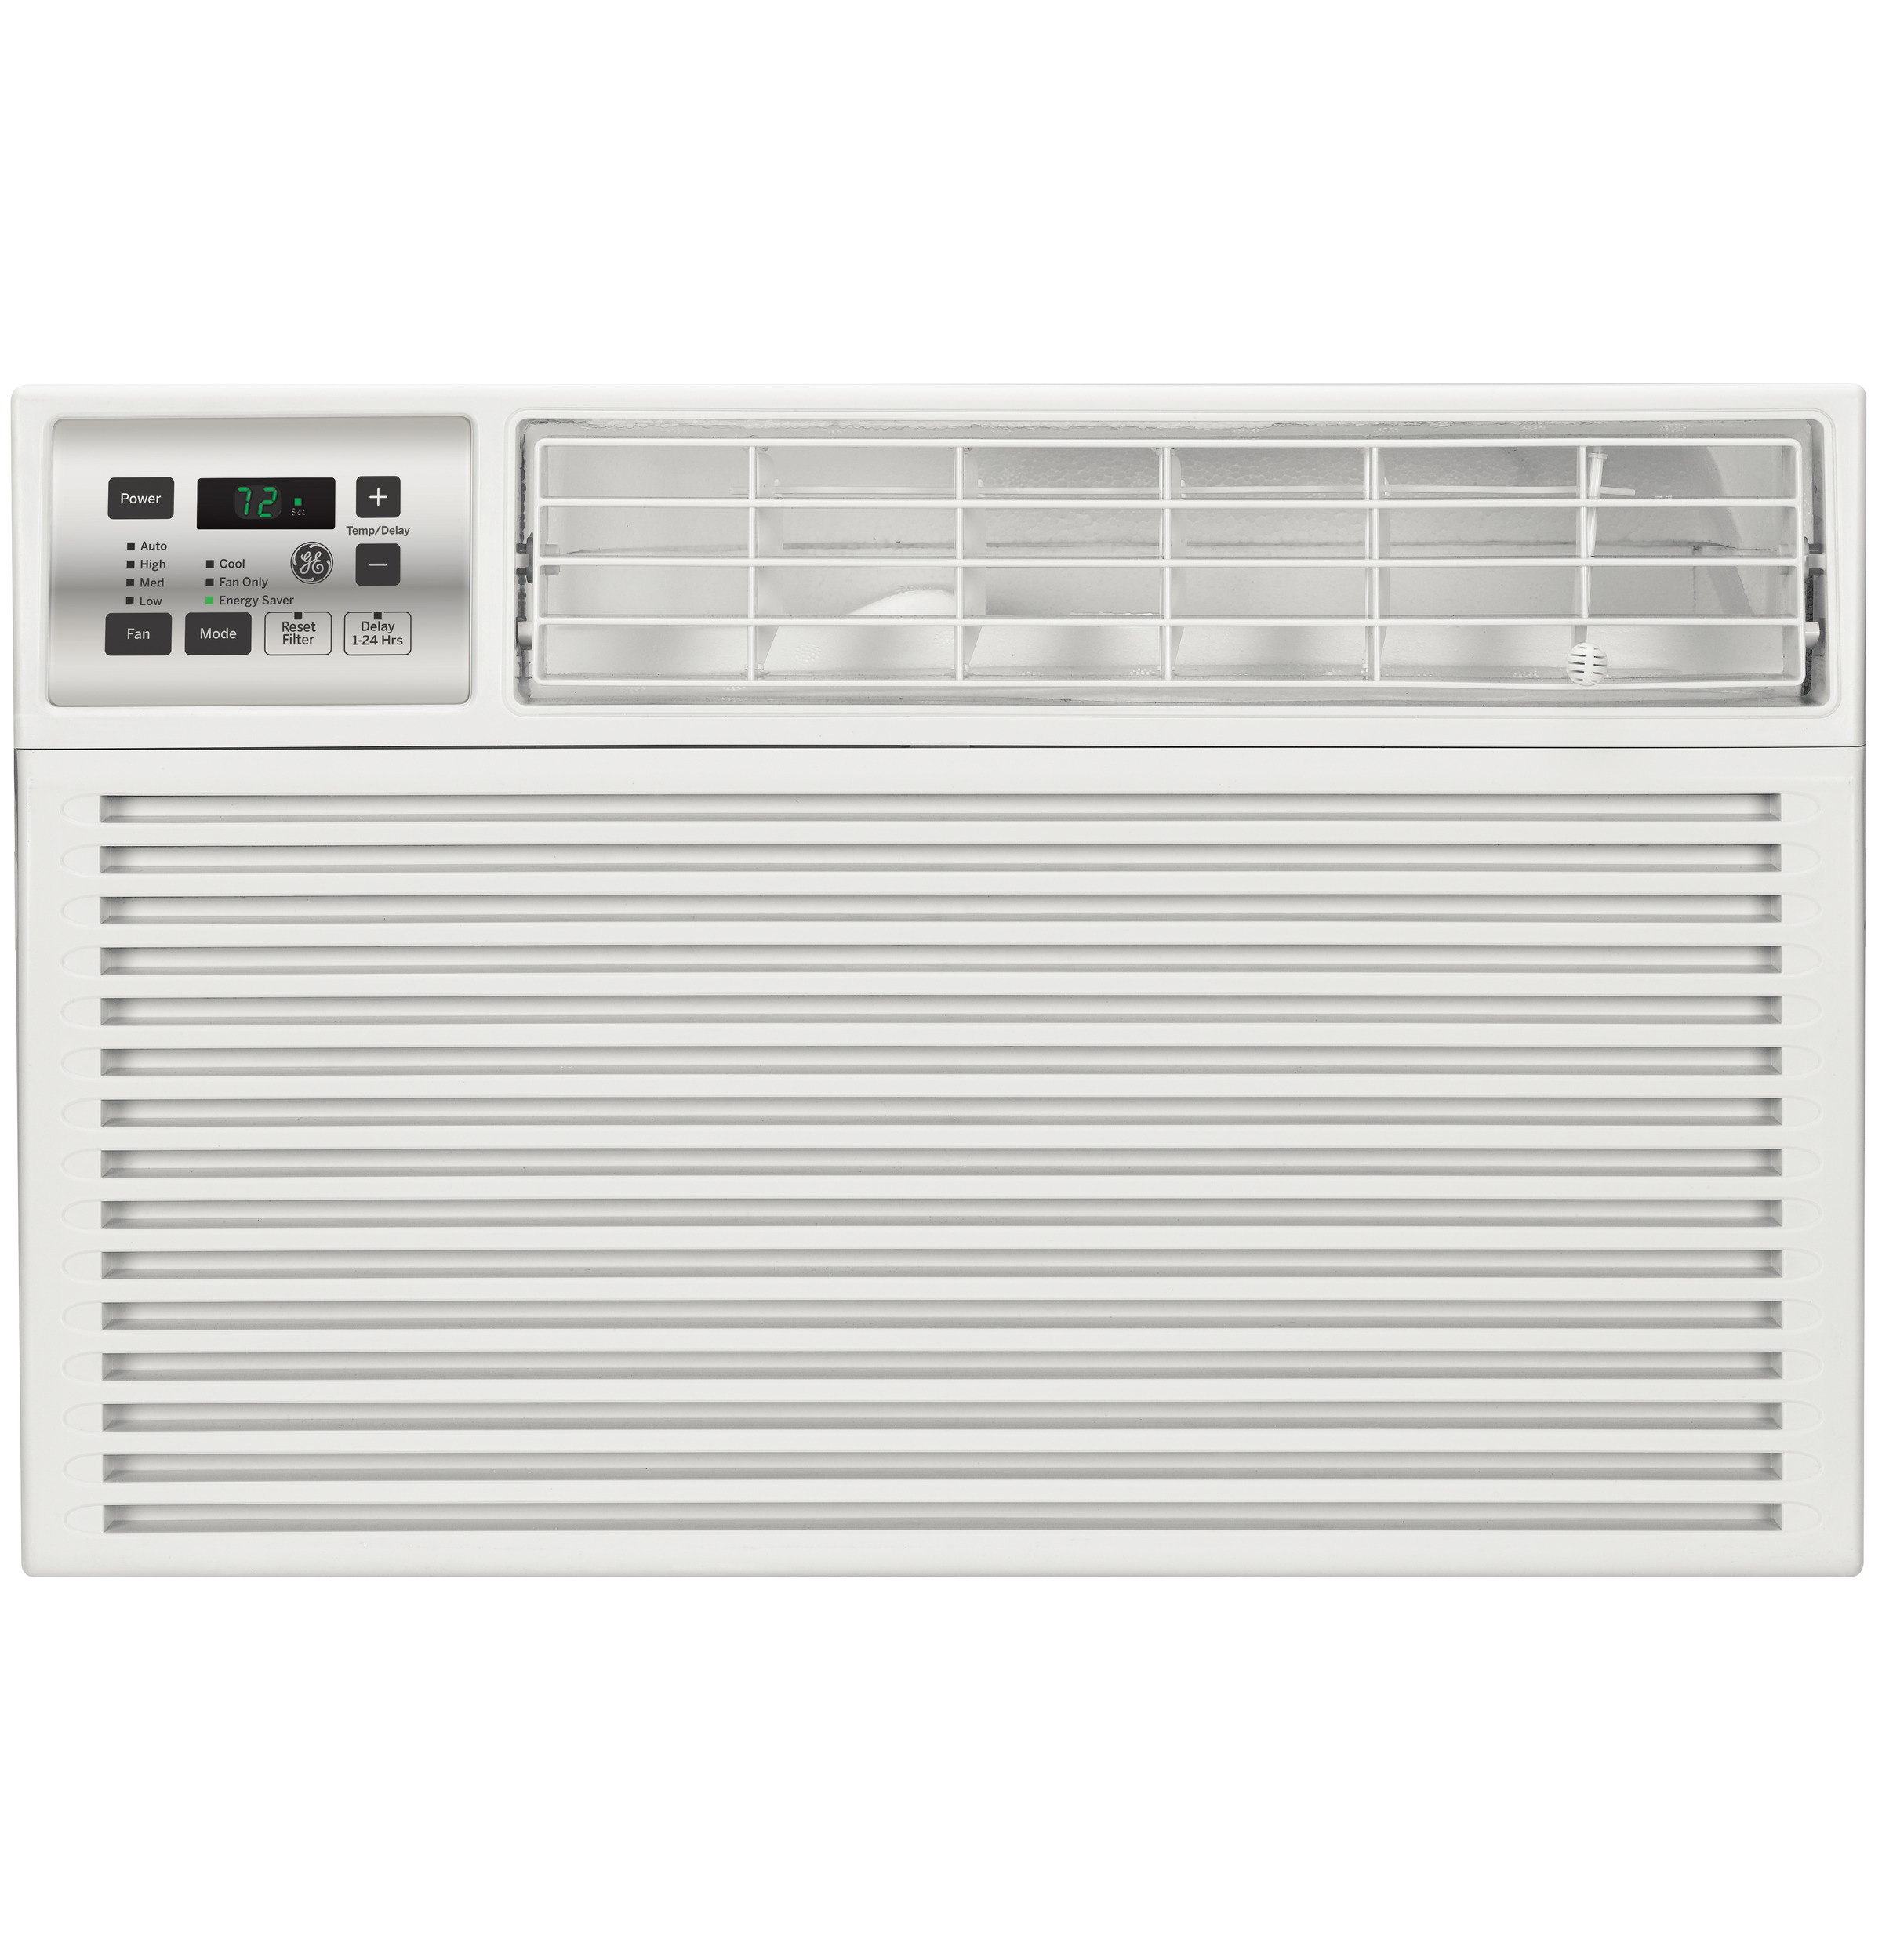 GE 8,000 BTU AIR CONDITIONER WITH REMOTE, AEW08LX